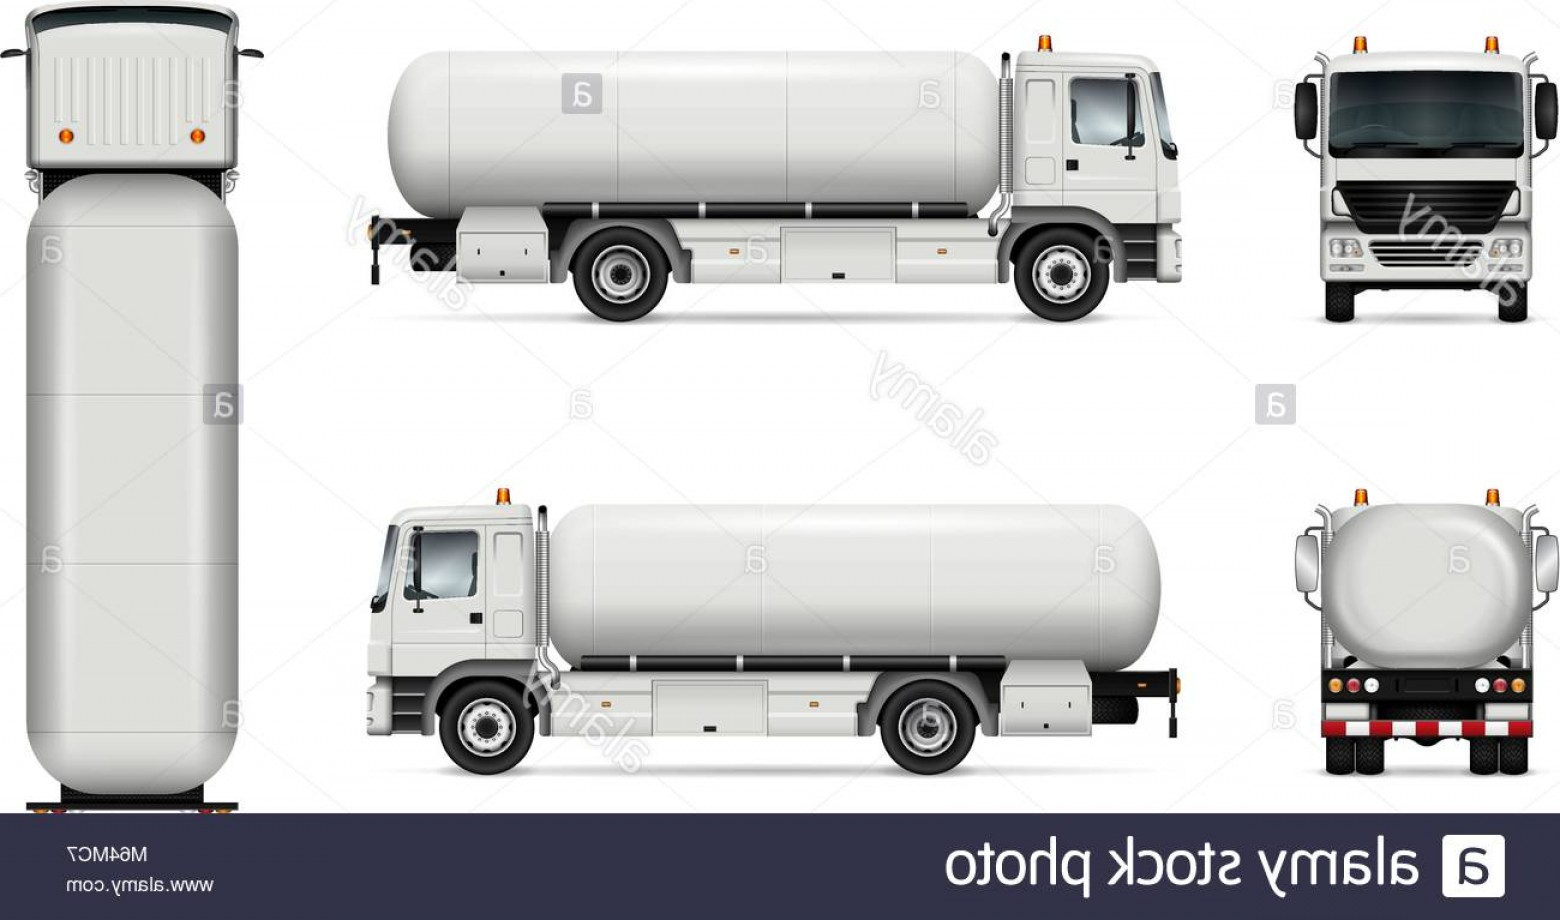 Tank Trucks Vector Art: Stock Photo Tank Truck Vector Mock Up Isolated Template Of Tanker Lorry On White